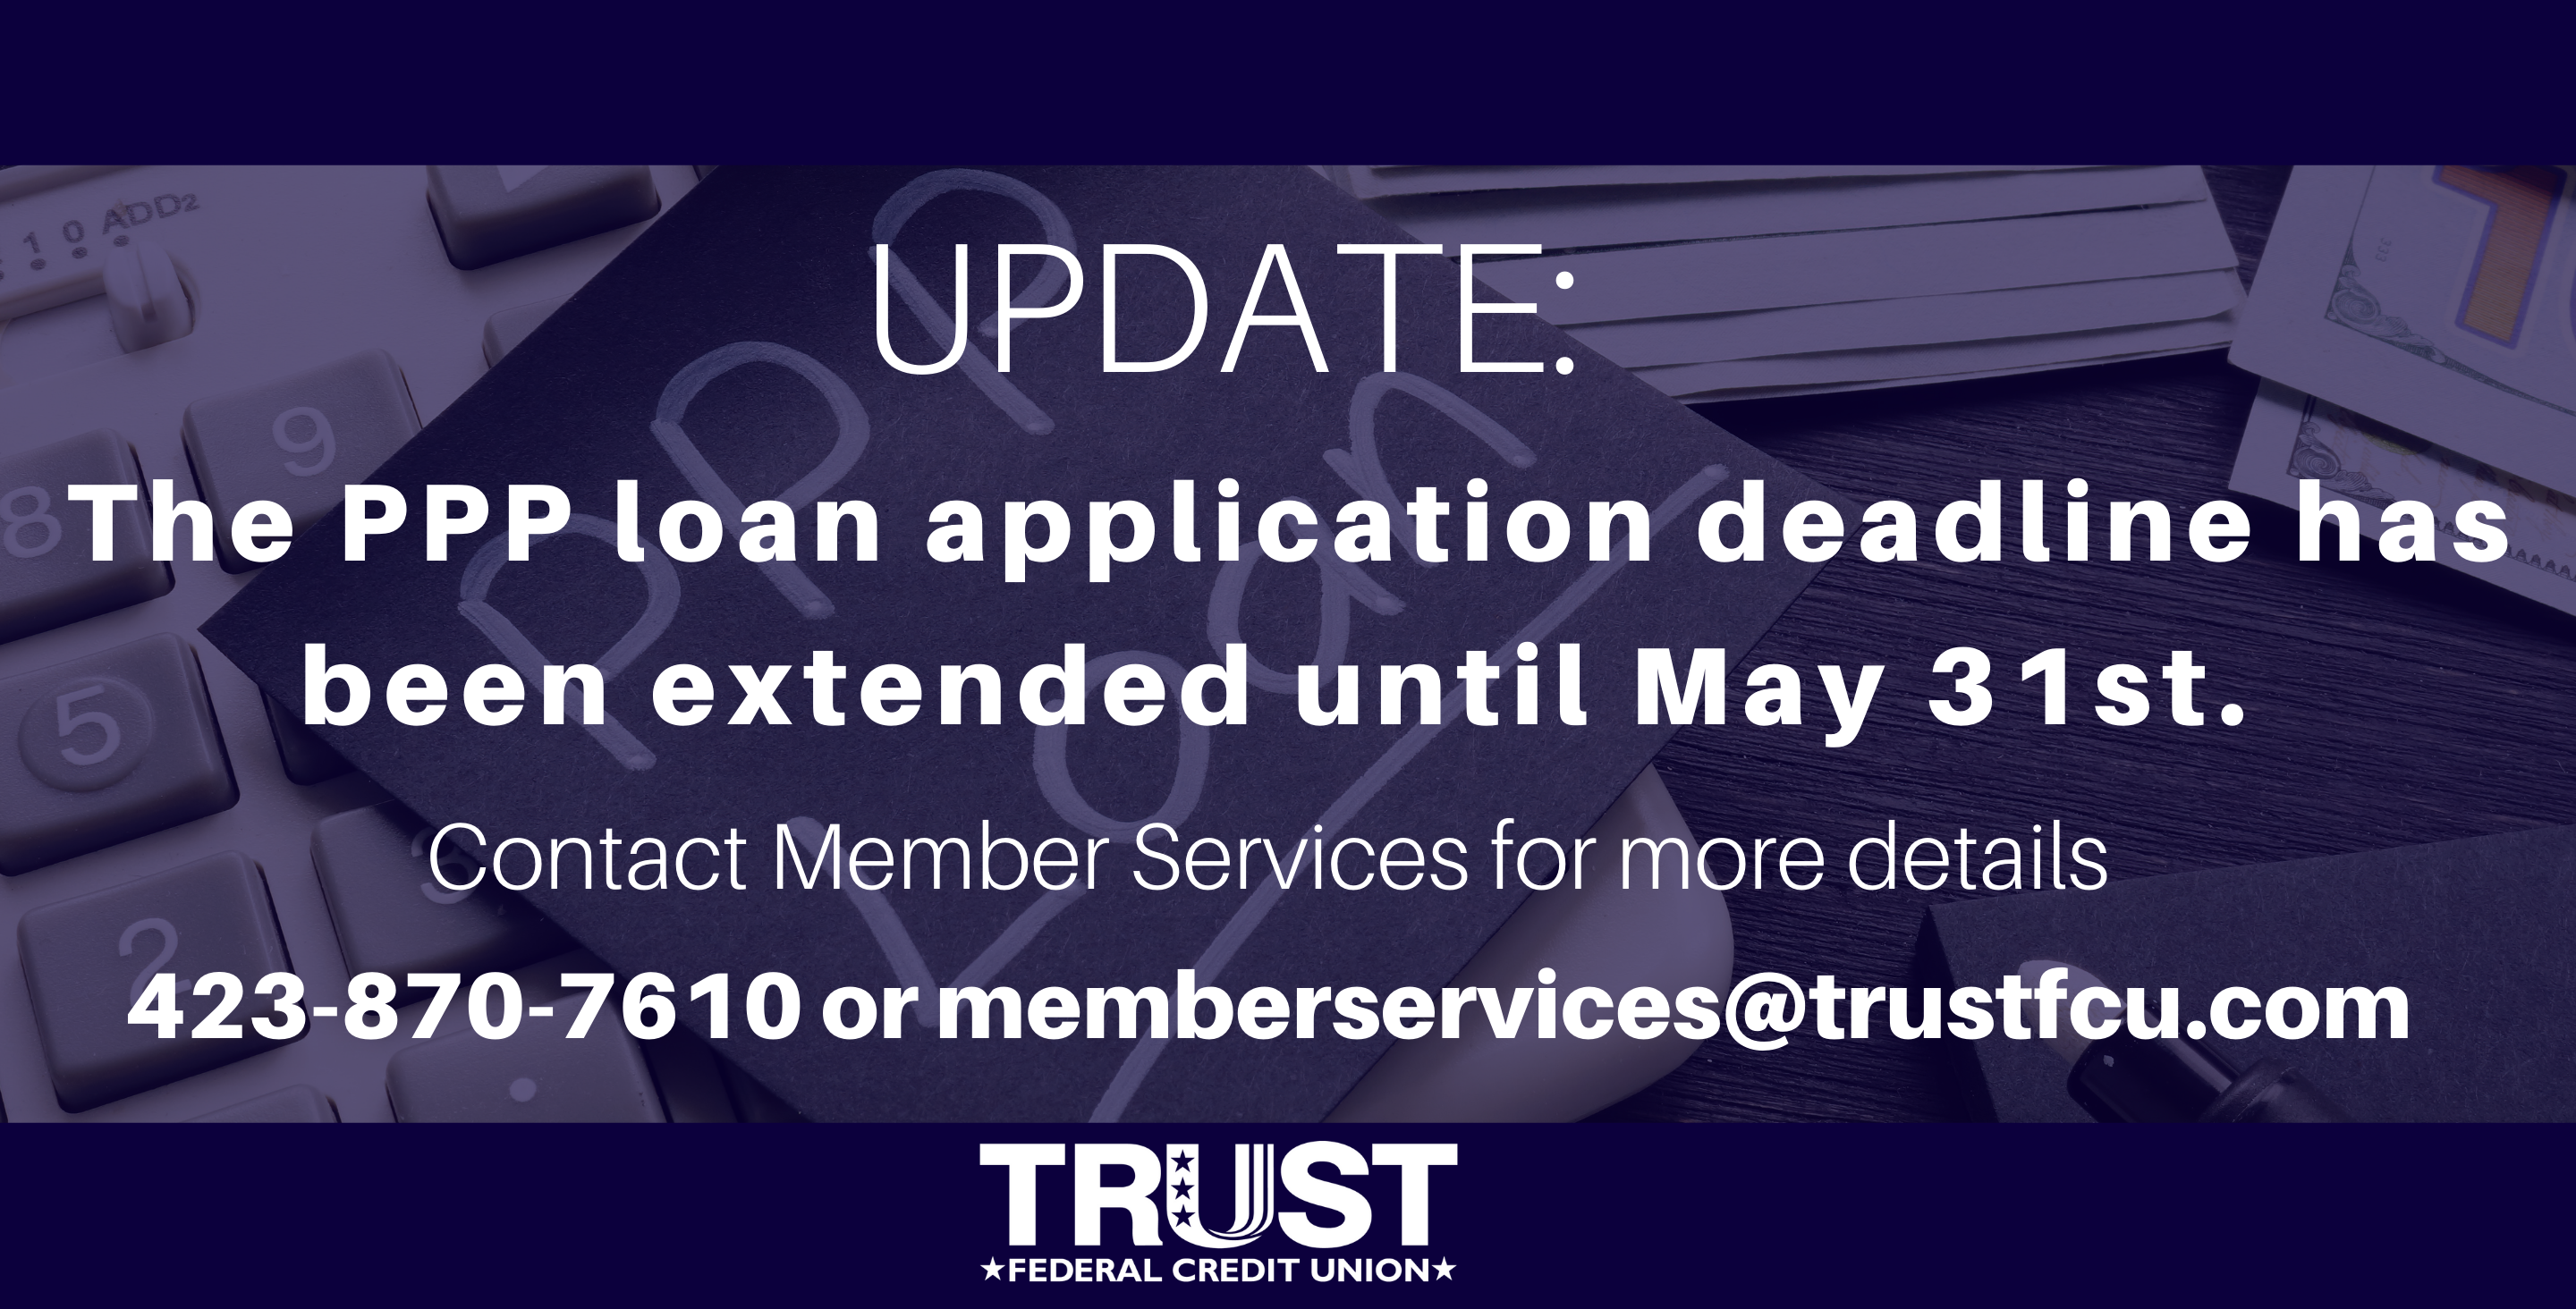 Update: The PPP loan application deadline has been extended until May 31st.  Contact Member Services for more details at 423-870-7610 or memberservices@trustfcu.com